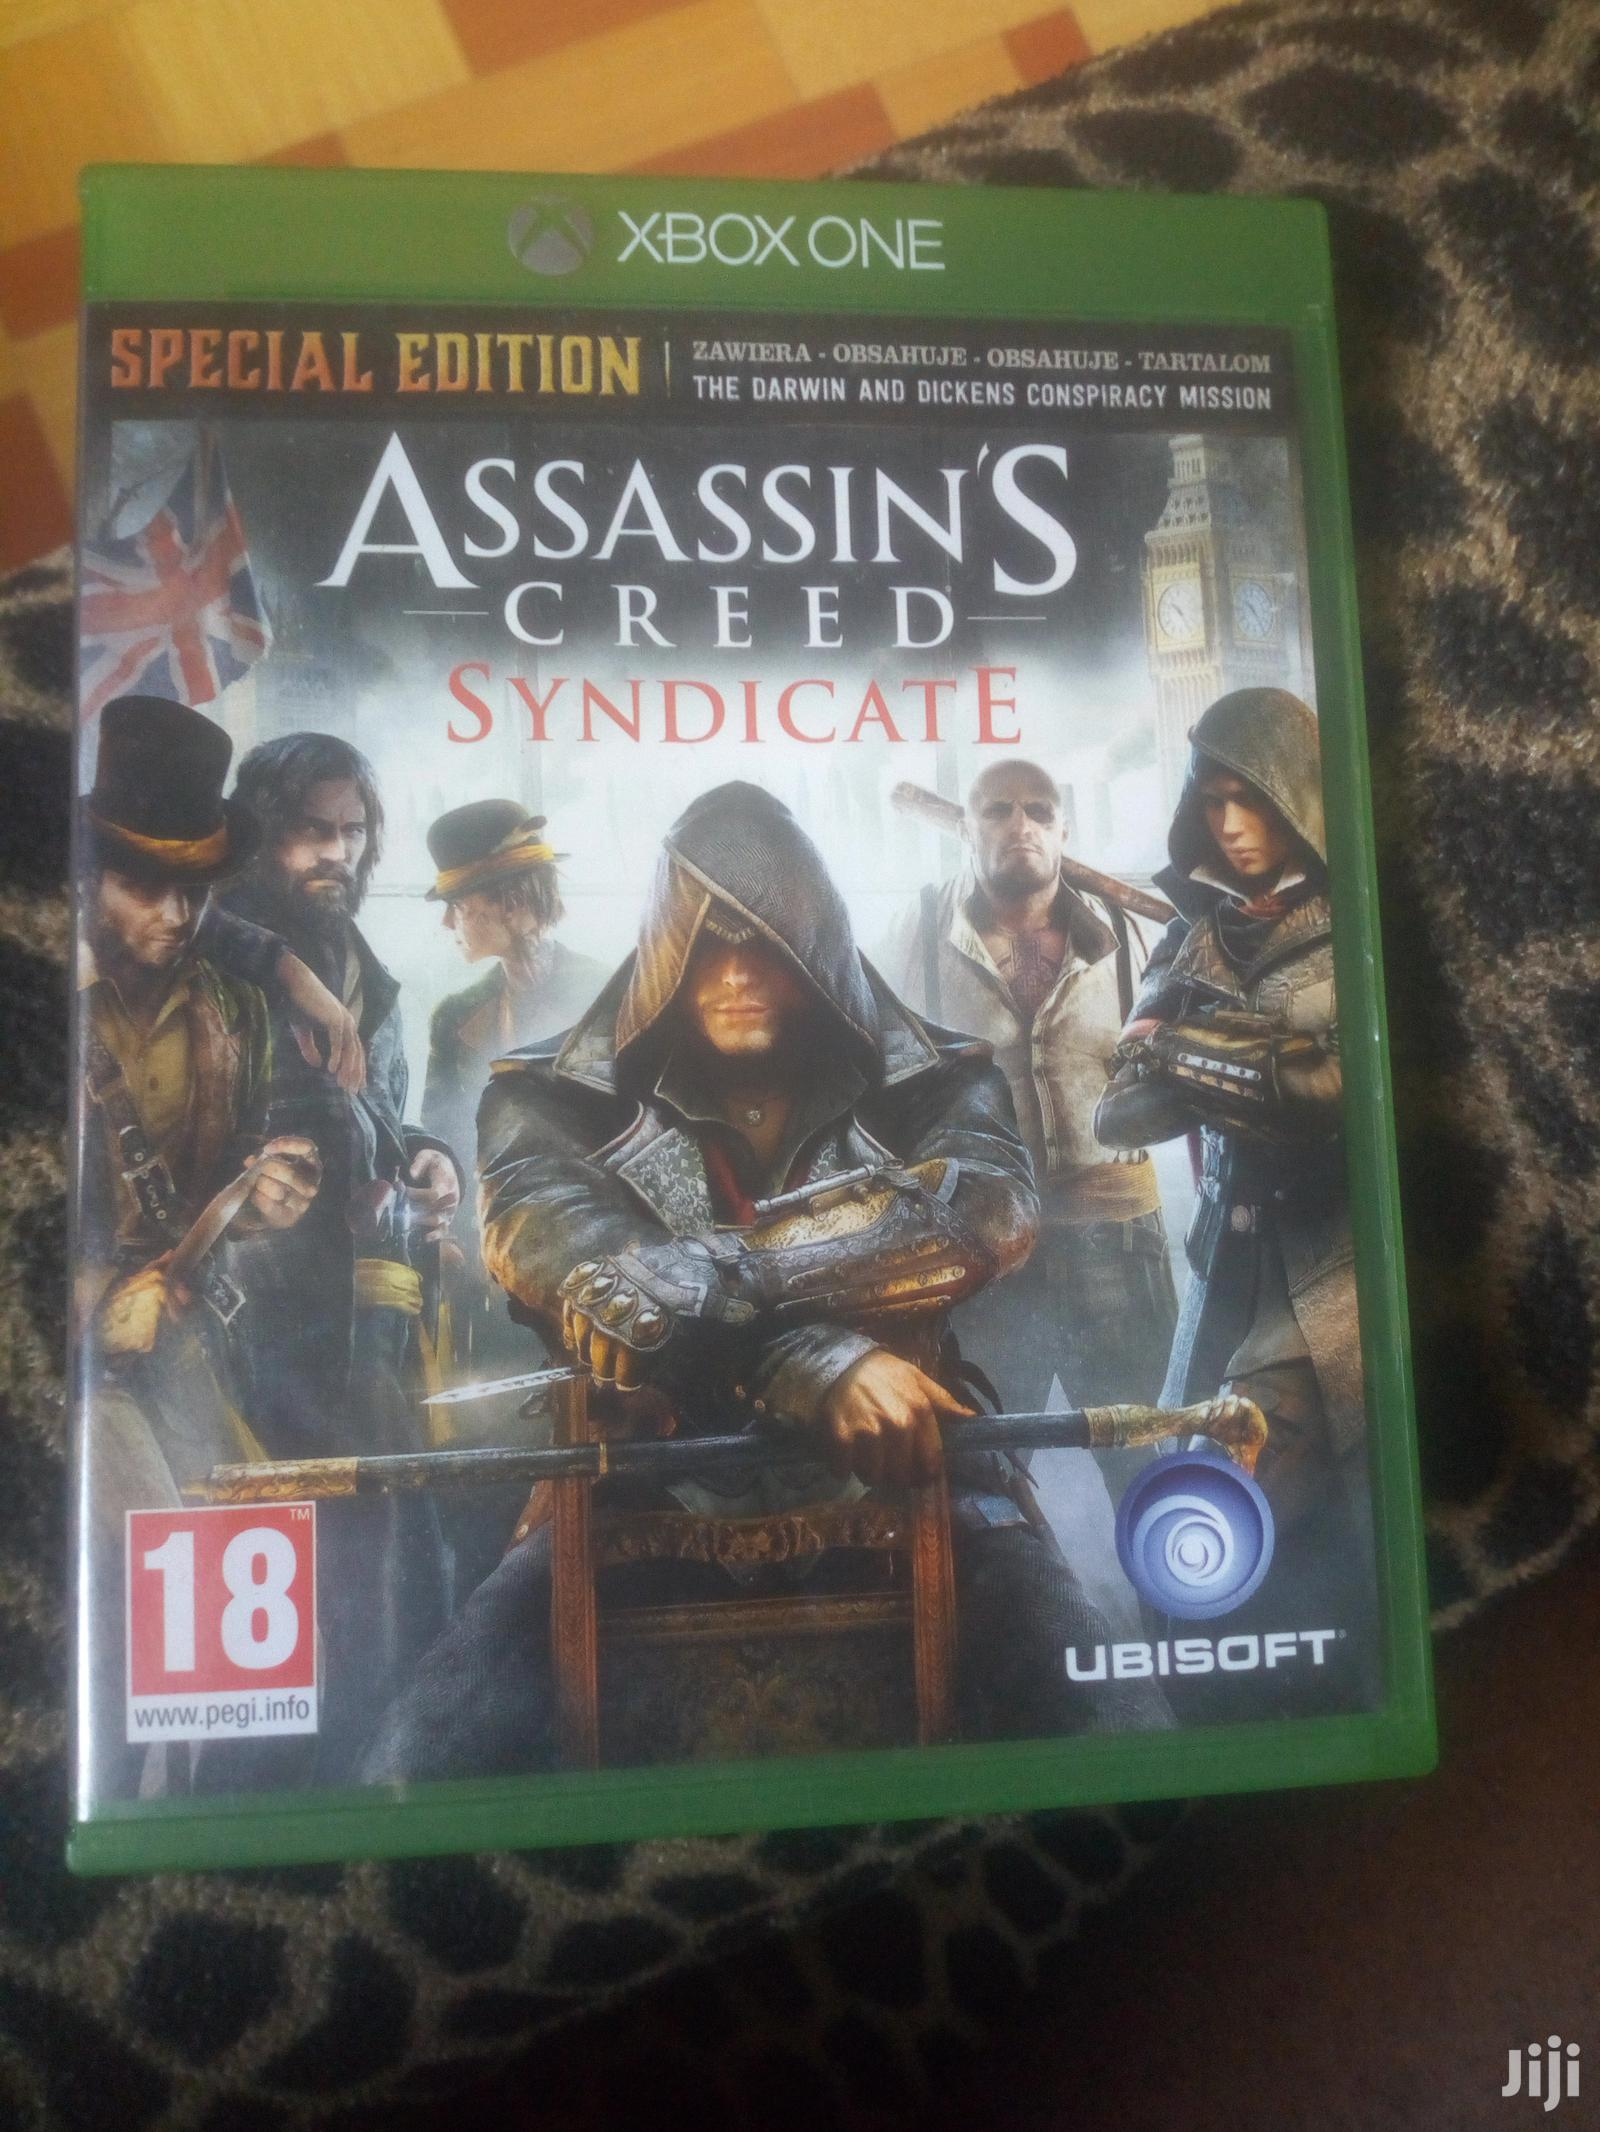 Assassin Creed Syndicate For Xbox One In Alimosho Video Games Segun Jiji Ng For Sale In Alimosho Buy Video Games From Segun On Jiji Ng